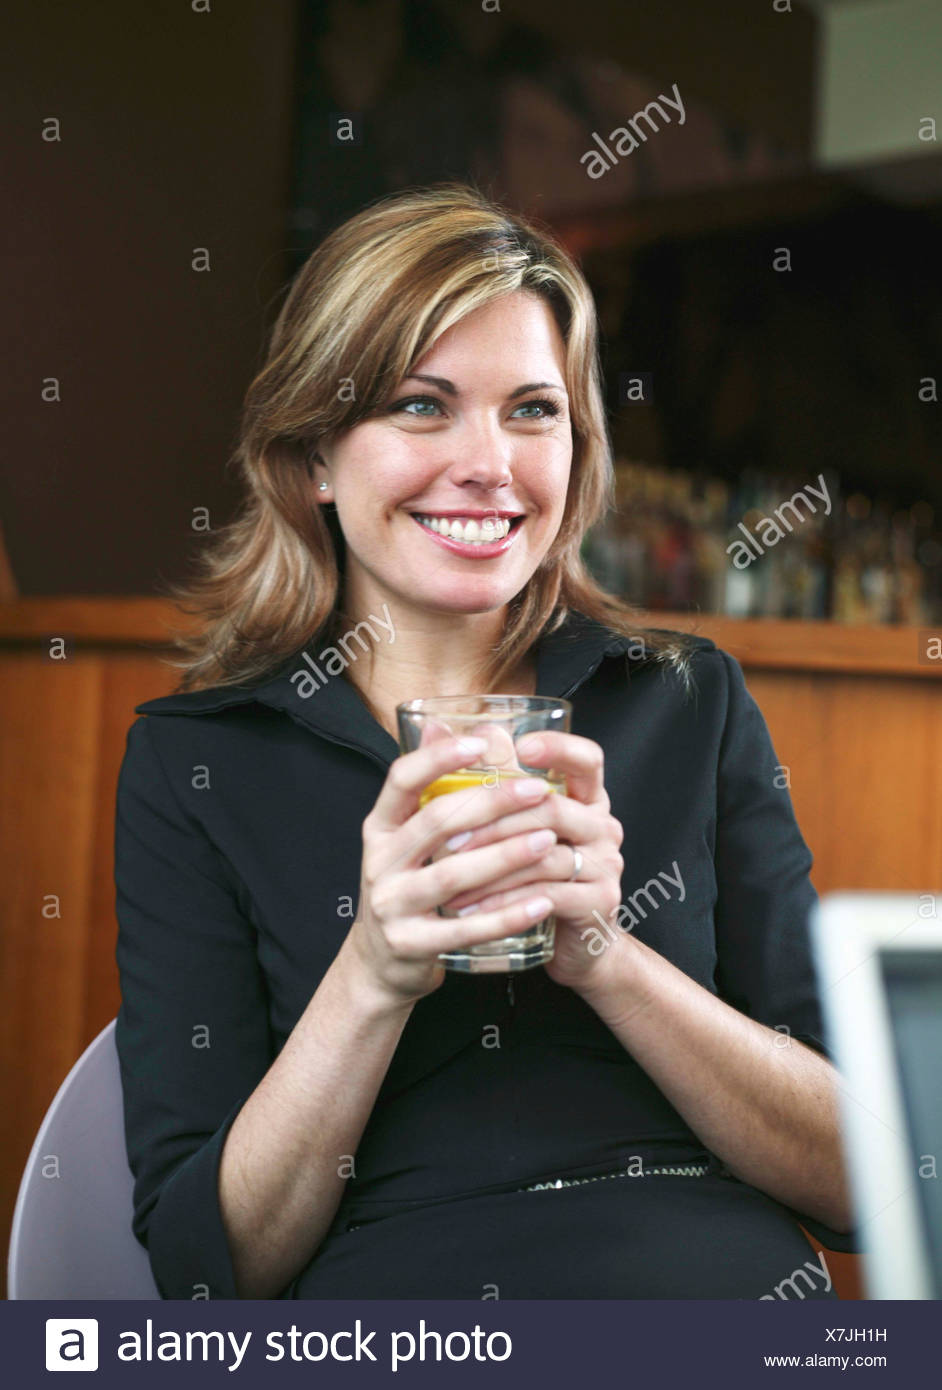 A businesswoman in a meeting in a hotel bar, smiling - Stock Image